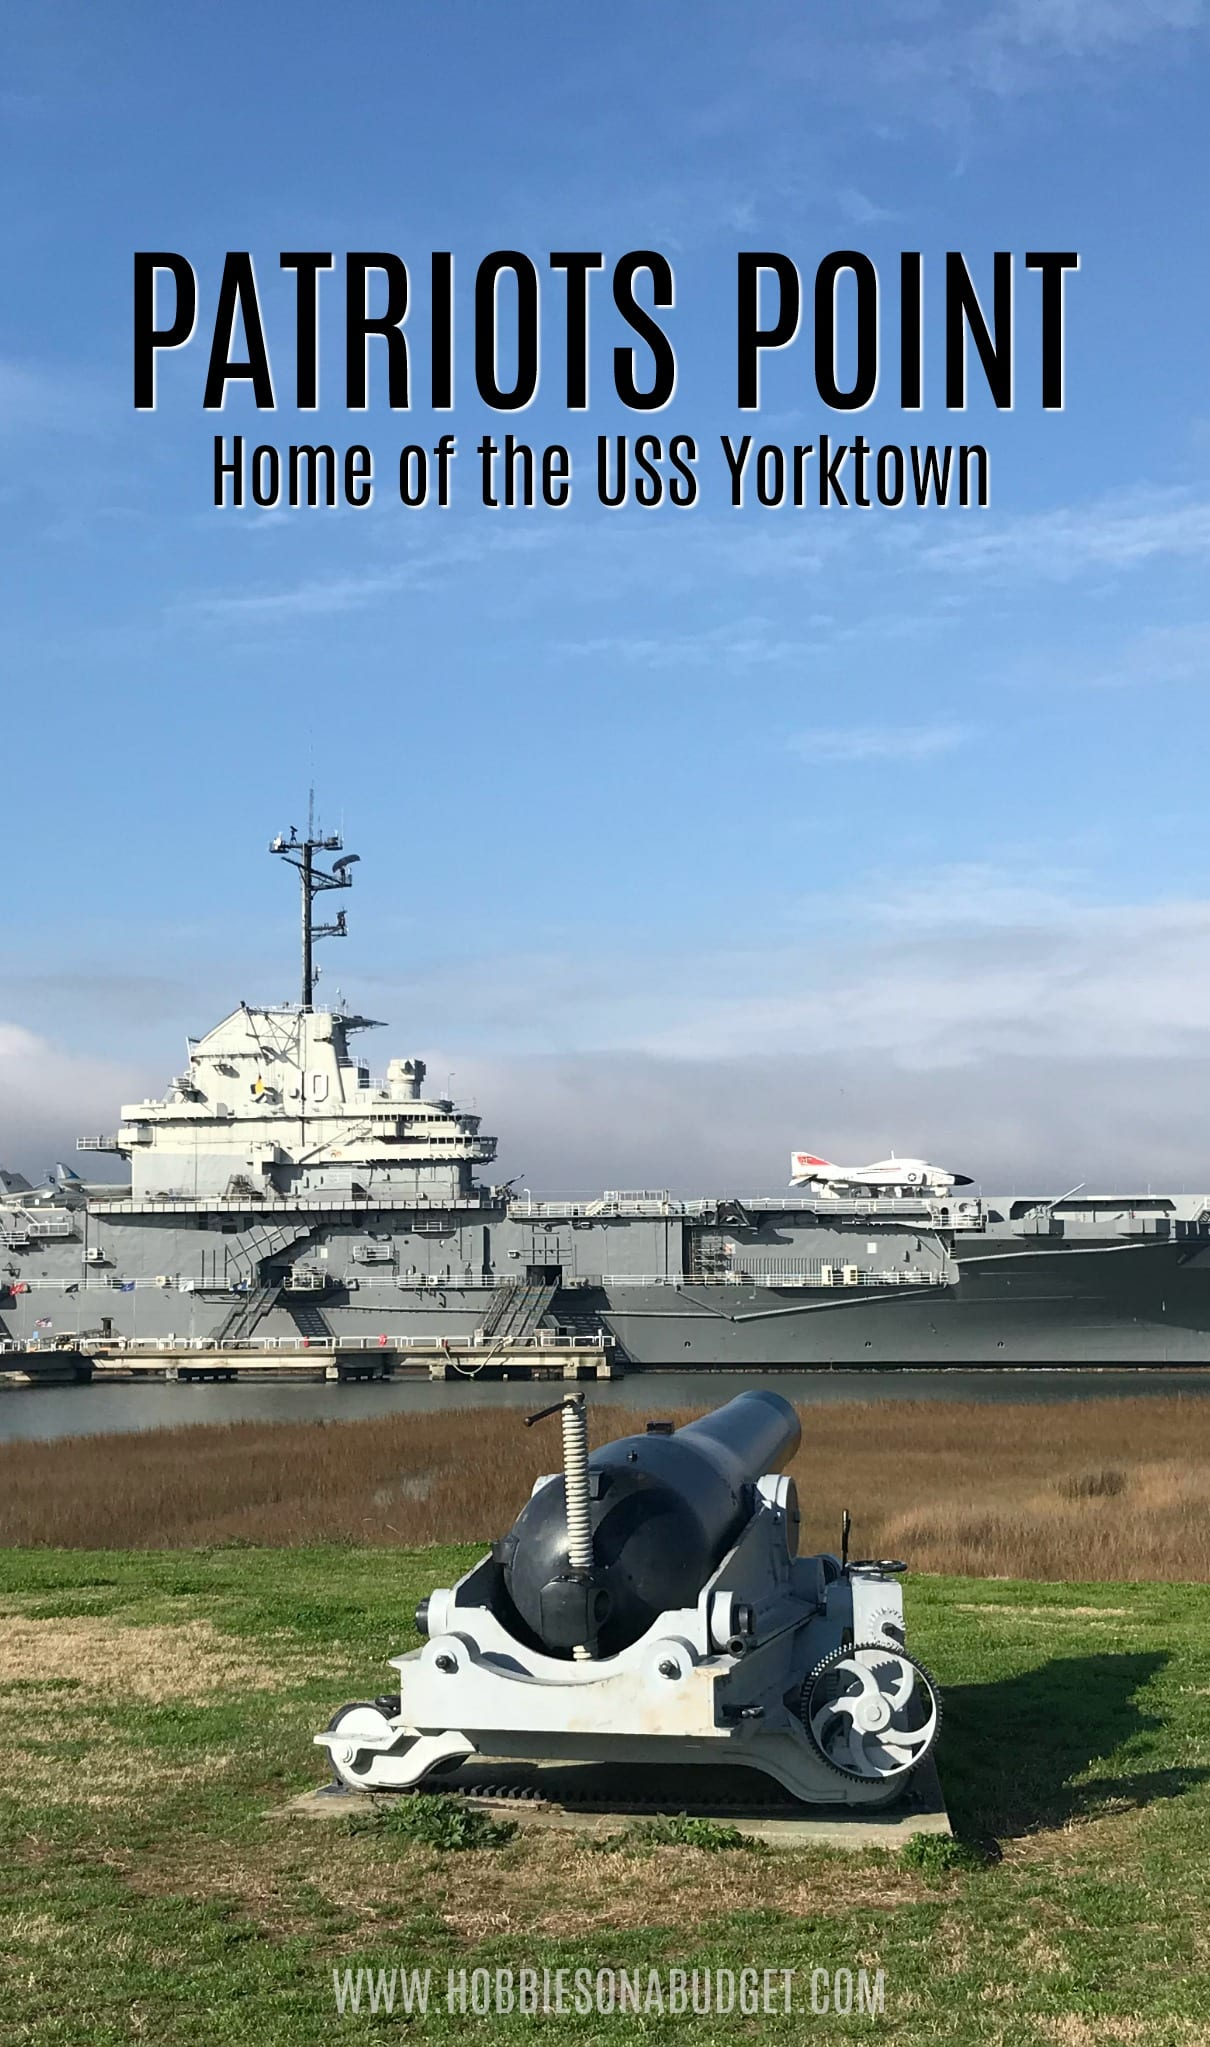 PATRIOTS POINT home of the USS Yorktown